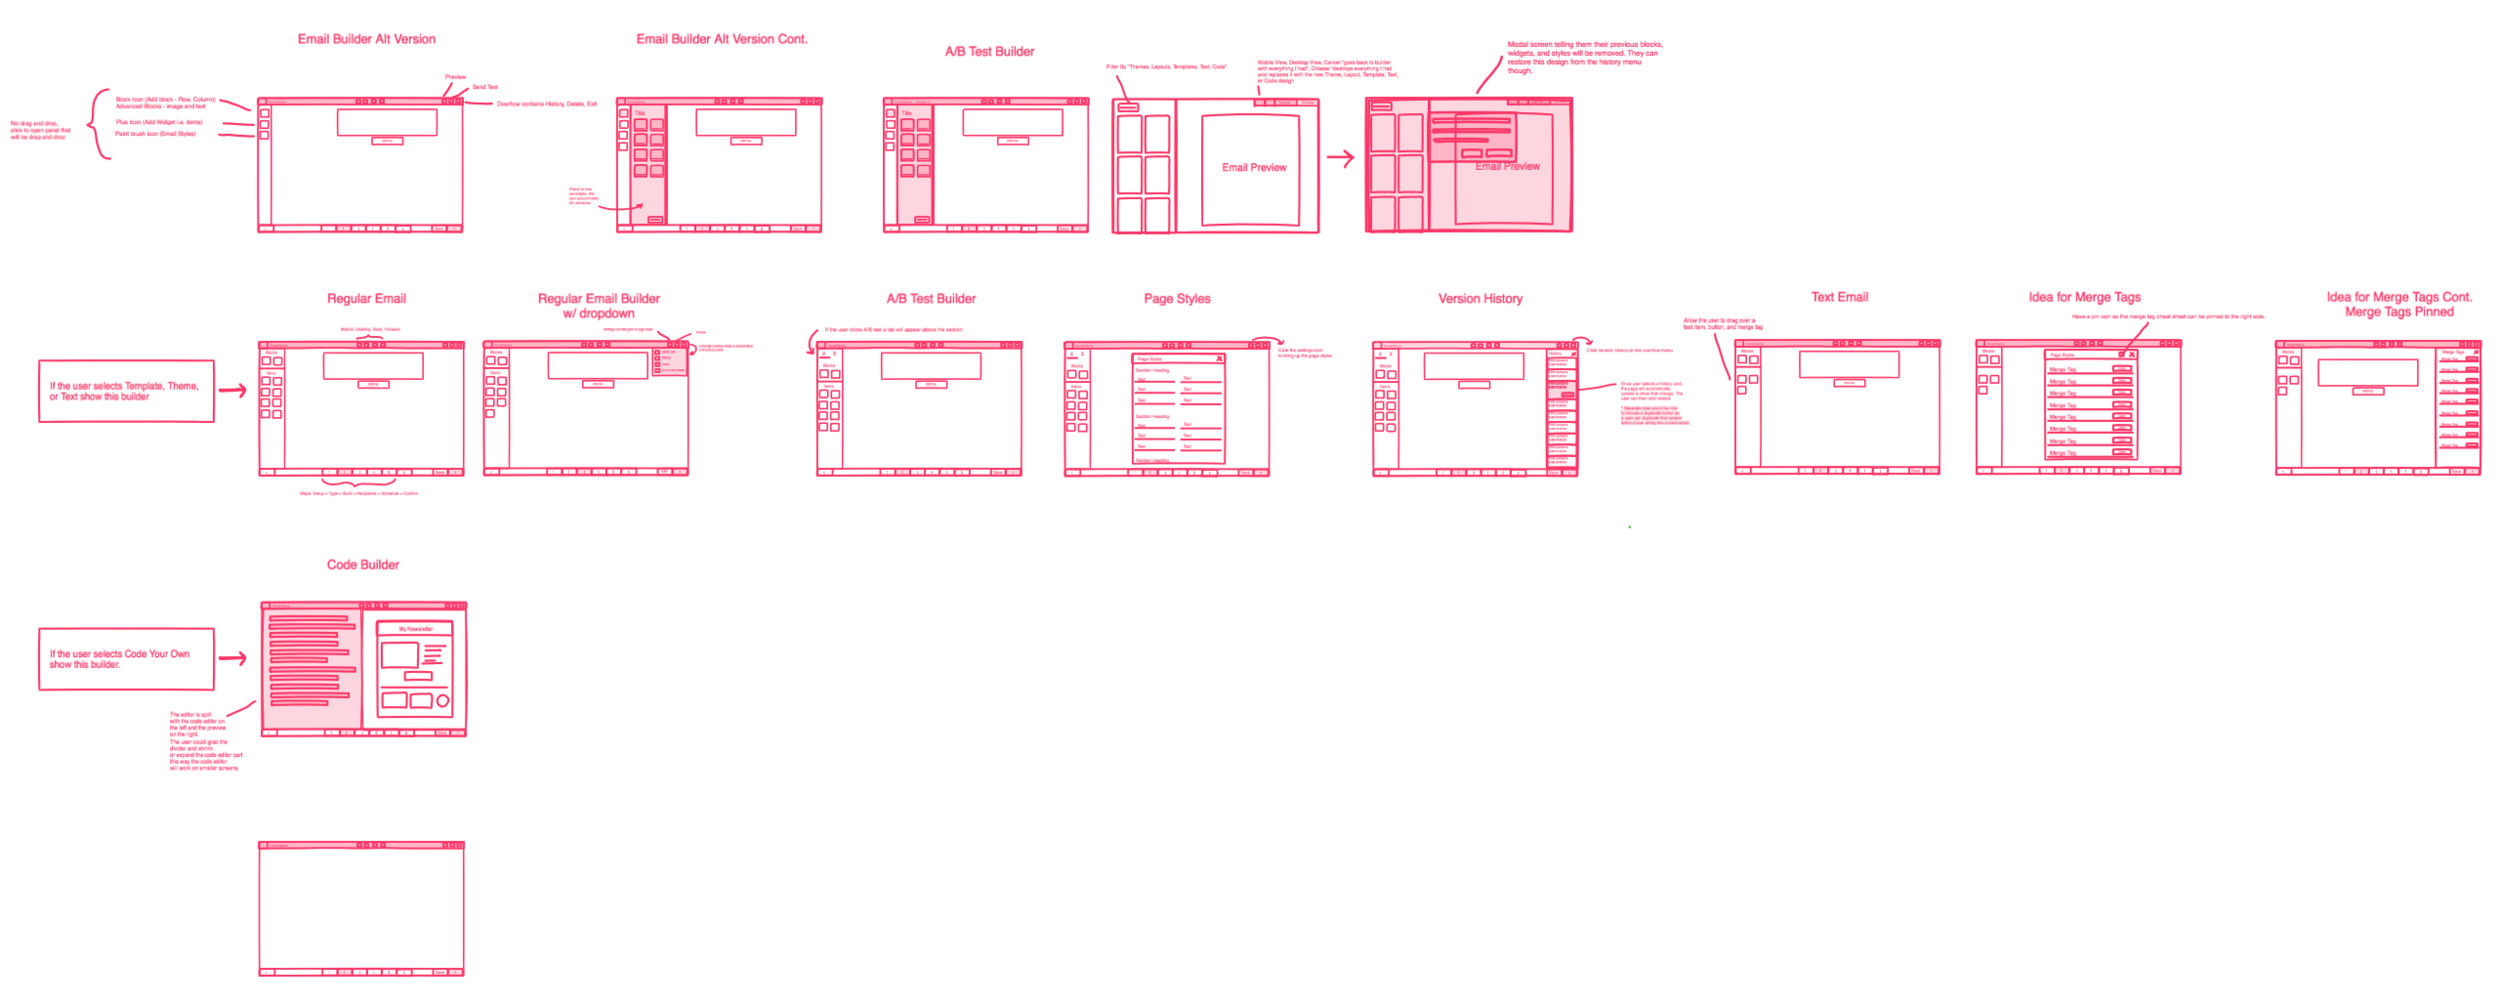 Invision Freehand - Invision Freehand became a useful tool to clean up the whiteboard sketches and show low fidelity wireframes. I still use invision freehand for wireframes because it takes one out of the ui and into the information architecture.